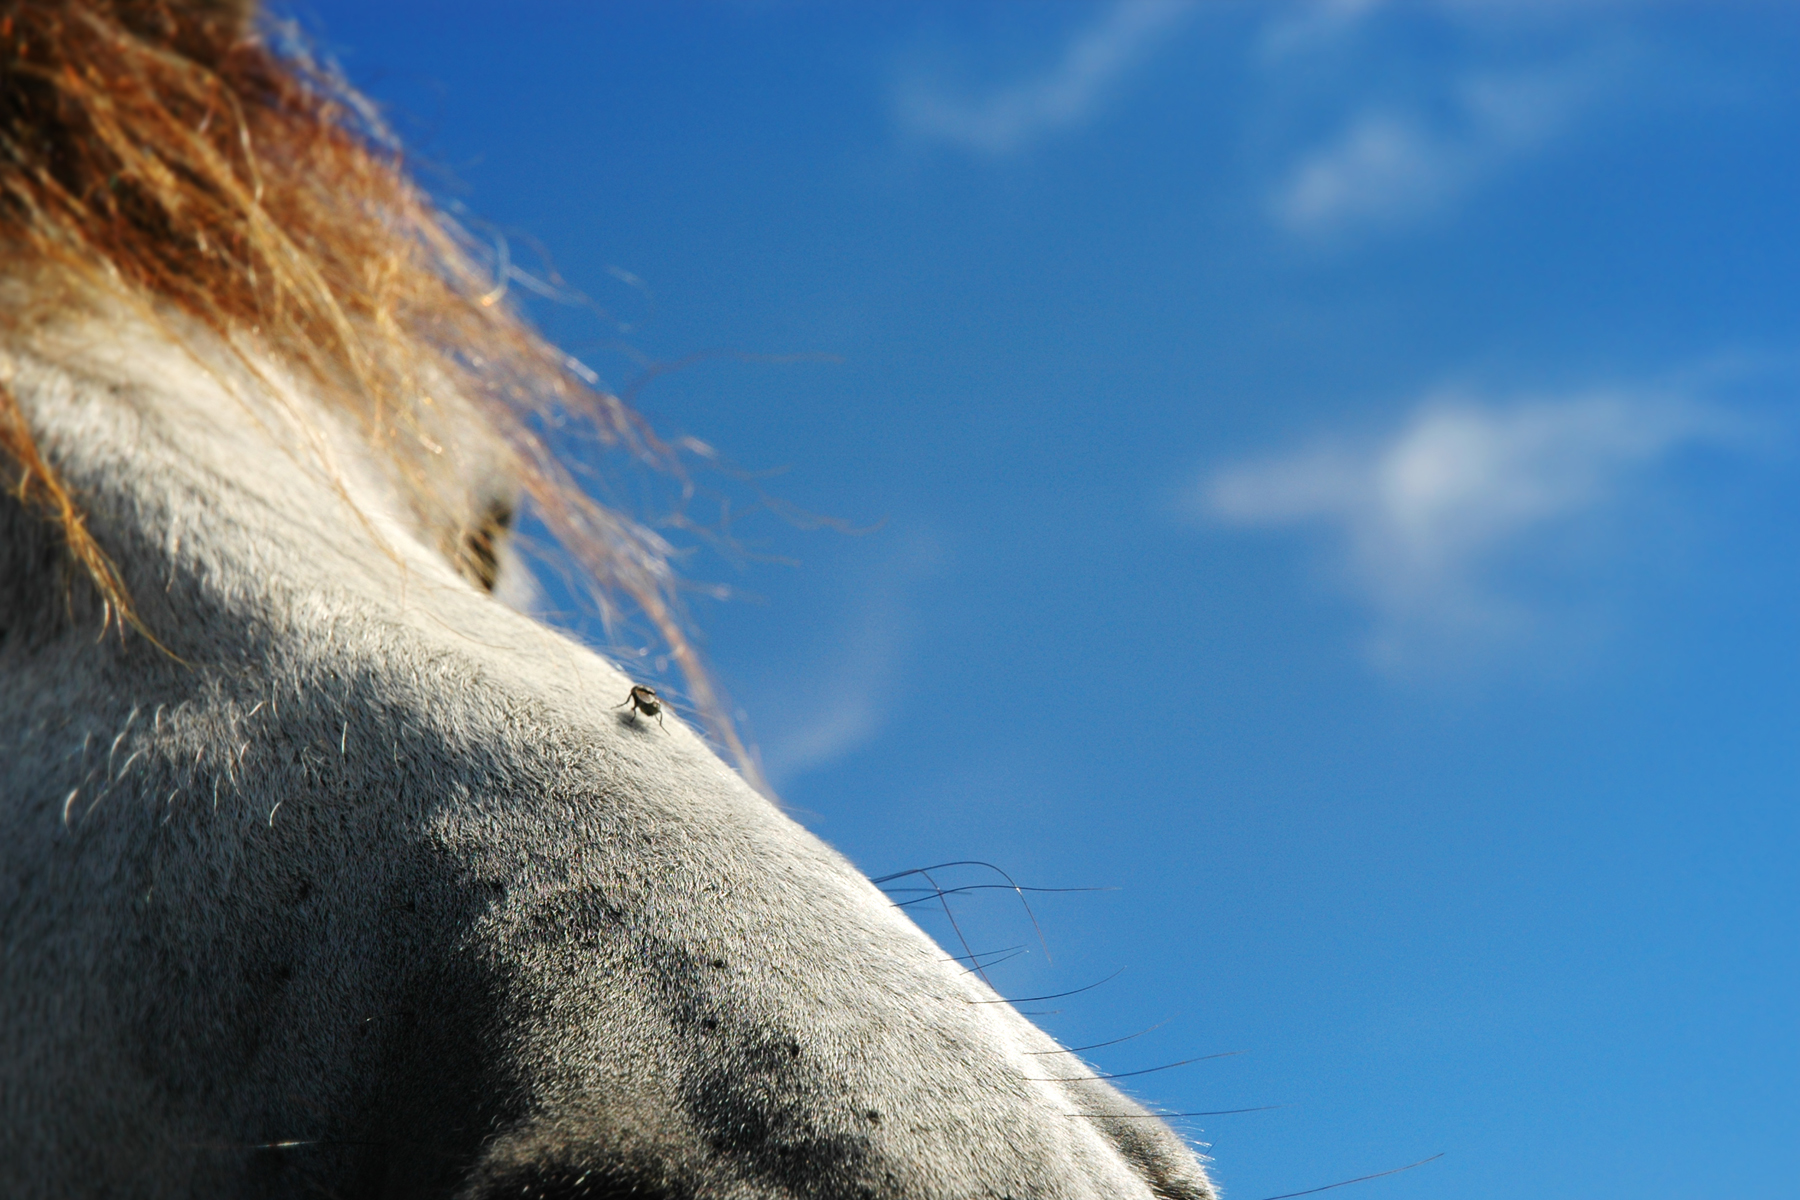 The horse and the fly, Blue, Bspo06, Close-up, Fly, HQ Photo